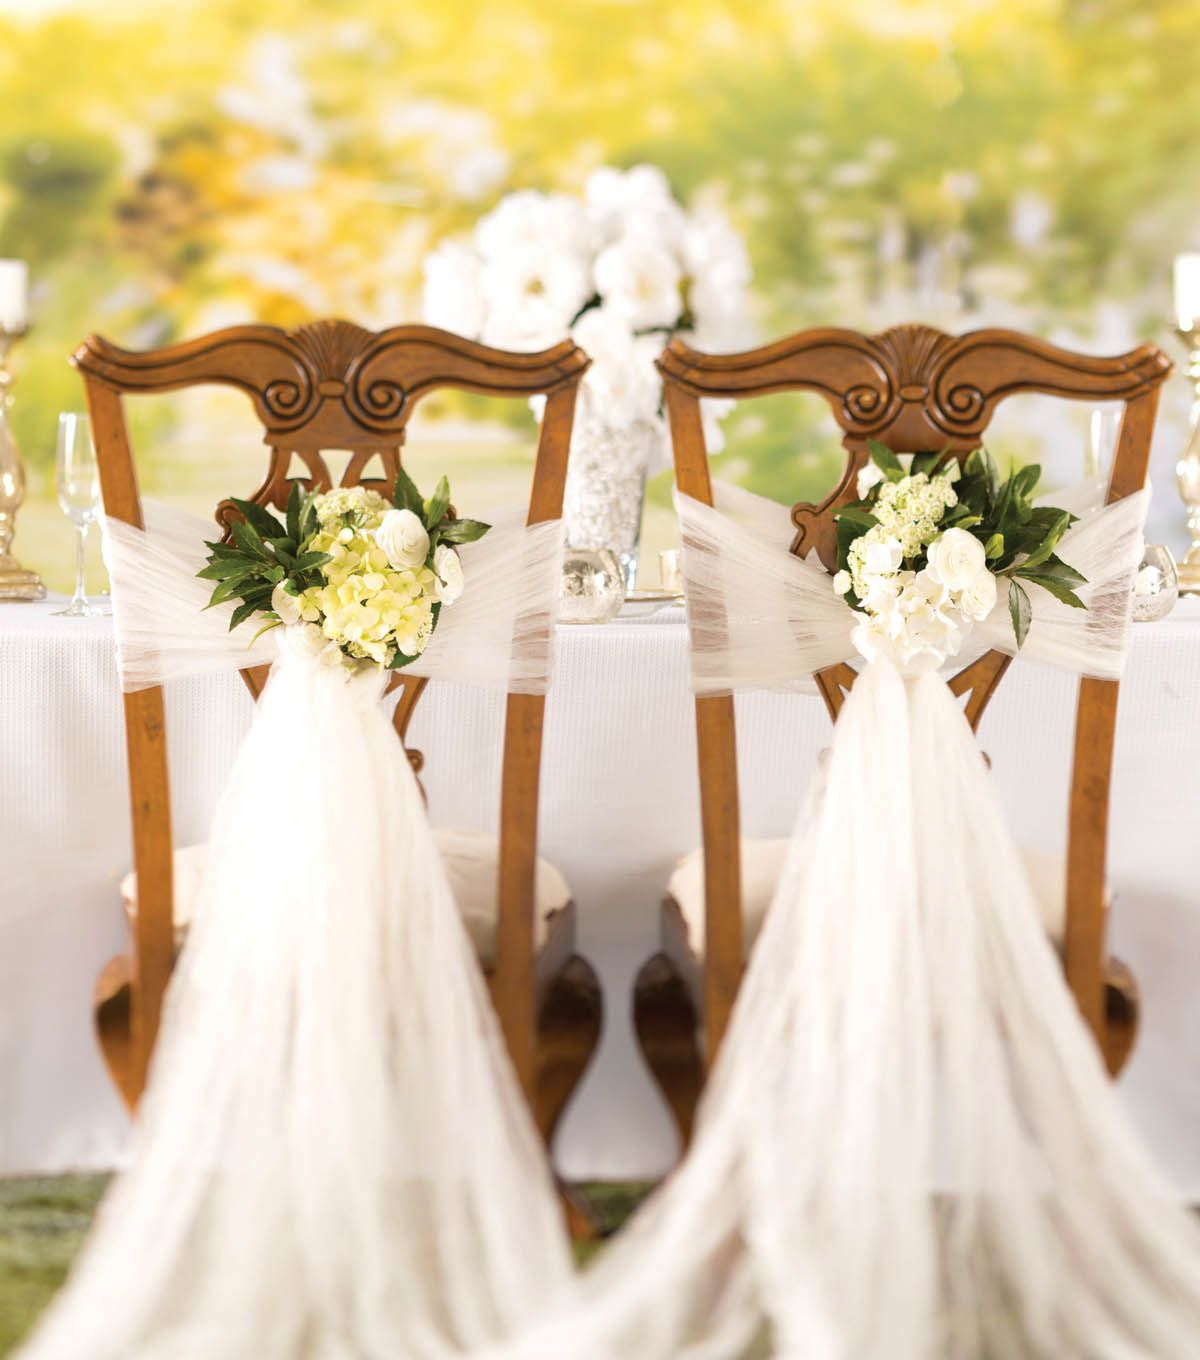 How To Make A Crushed Tulle Chair Dcor  DIY Wedding